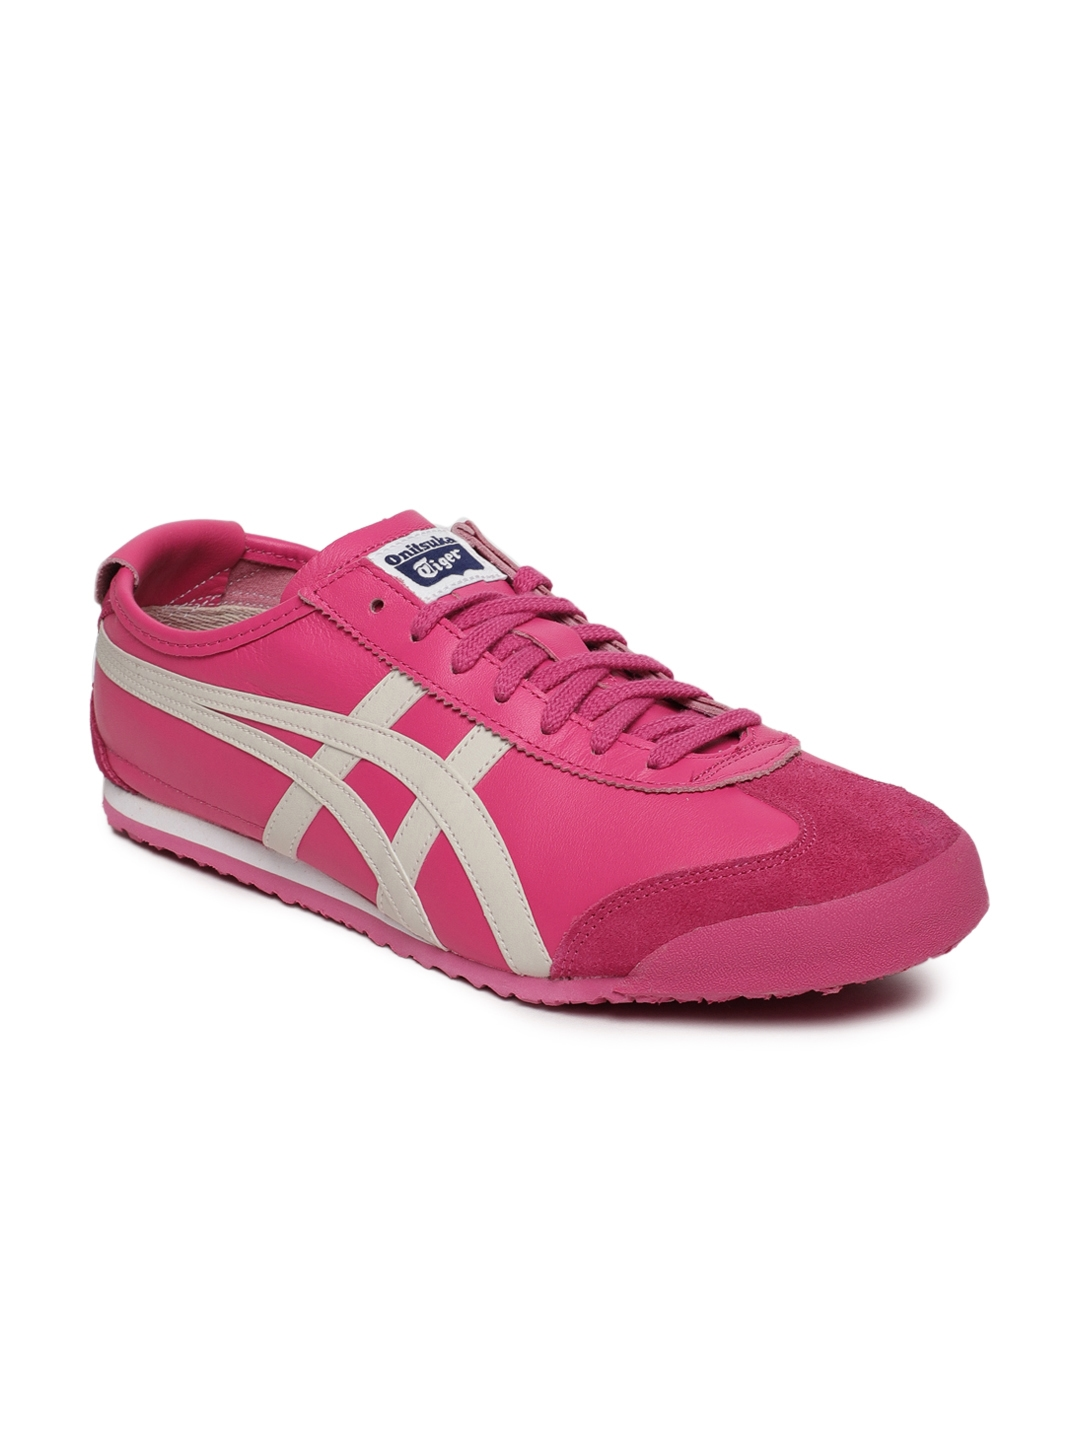 Buy Onitsuka Tiger Unisex Pink Leather Mexico 66 Sneakers - Casual ... ec32ef8af854